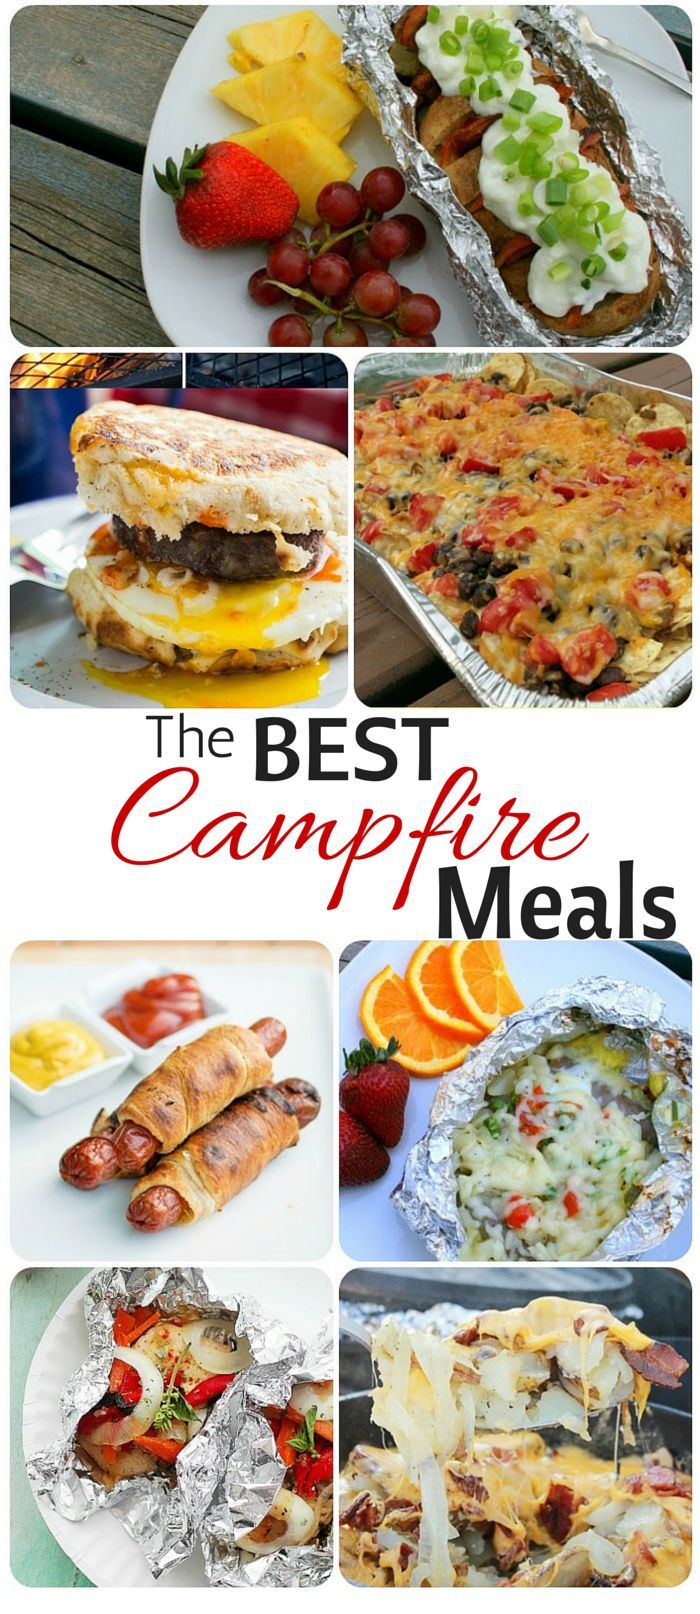 Simple and Easy Camping Meals! Breakfast, Lunch, Dinner...I can do this!